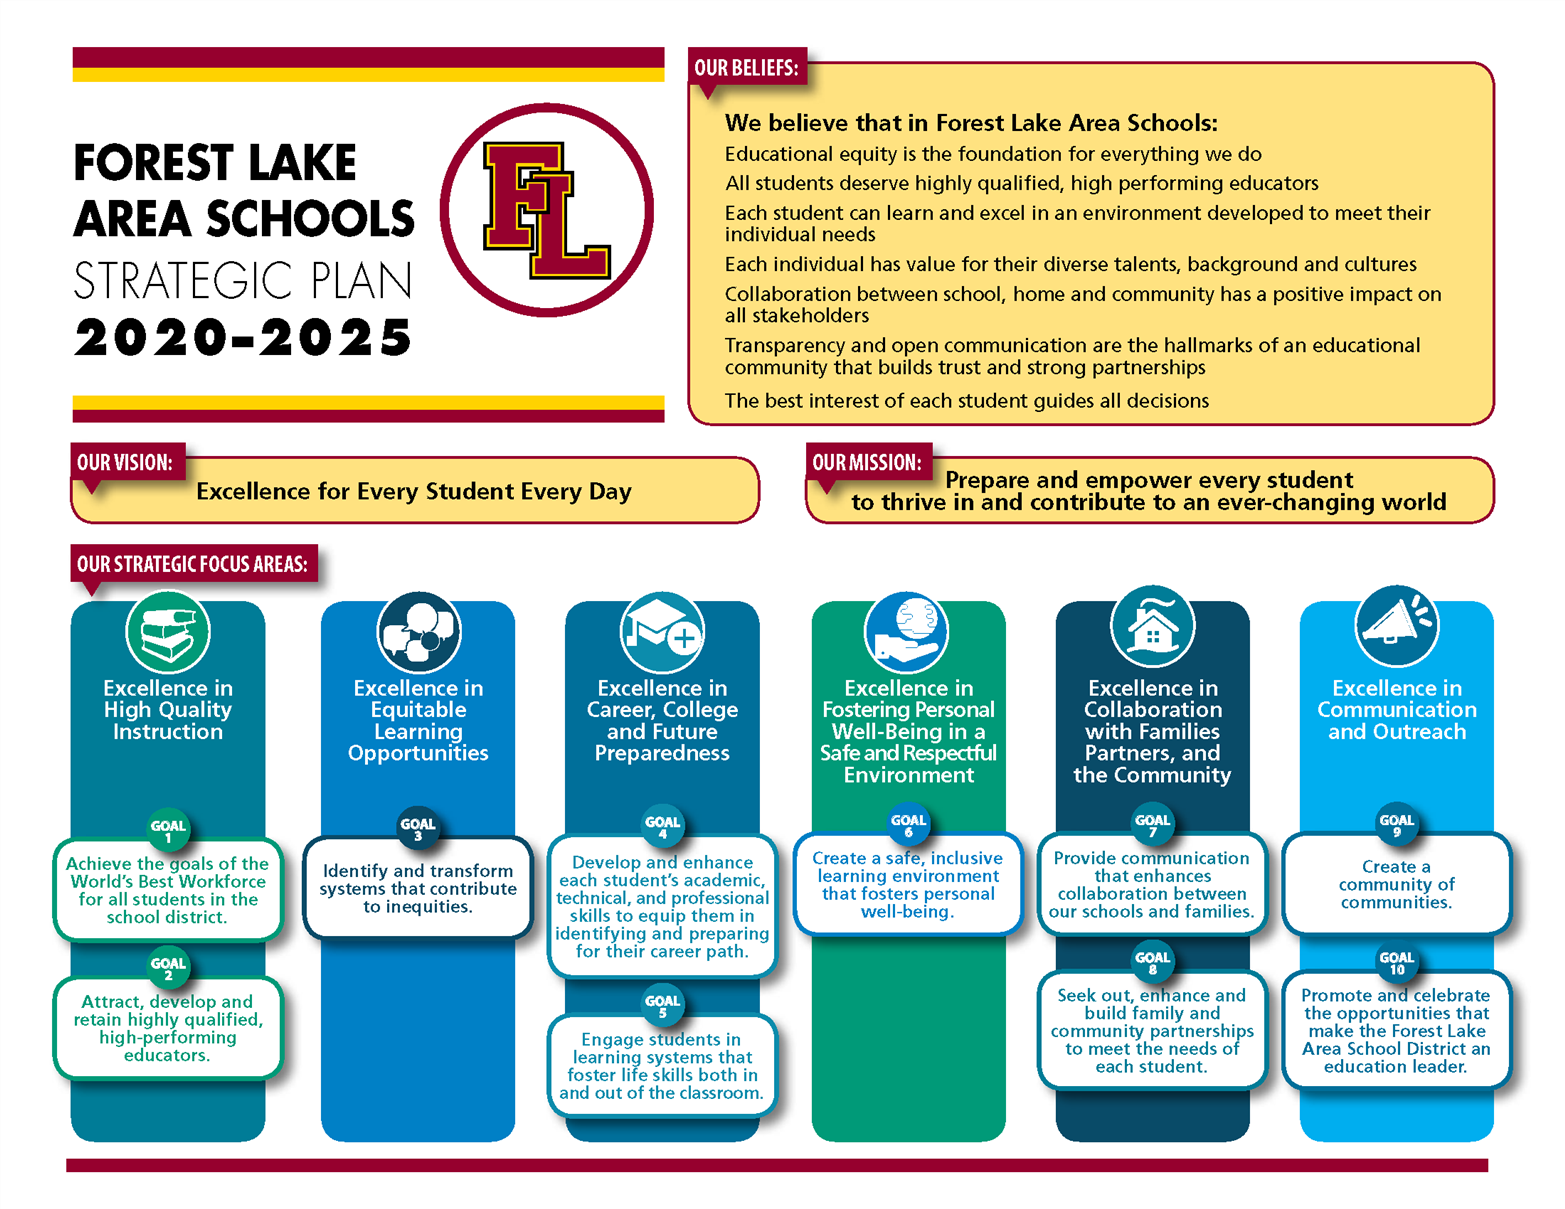 Forest Lake Area Schools Strategic Plan document